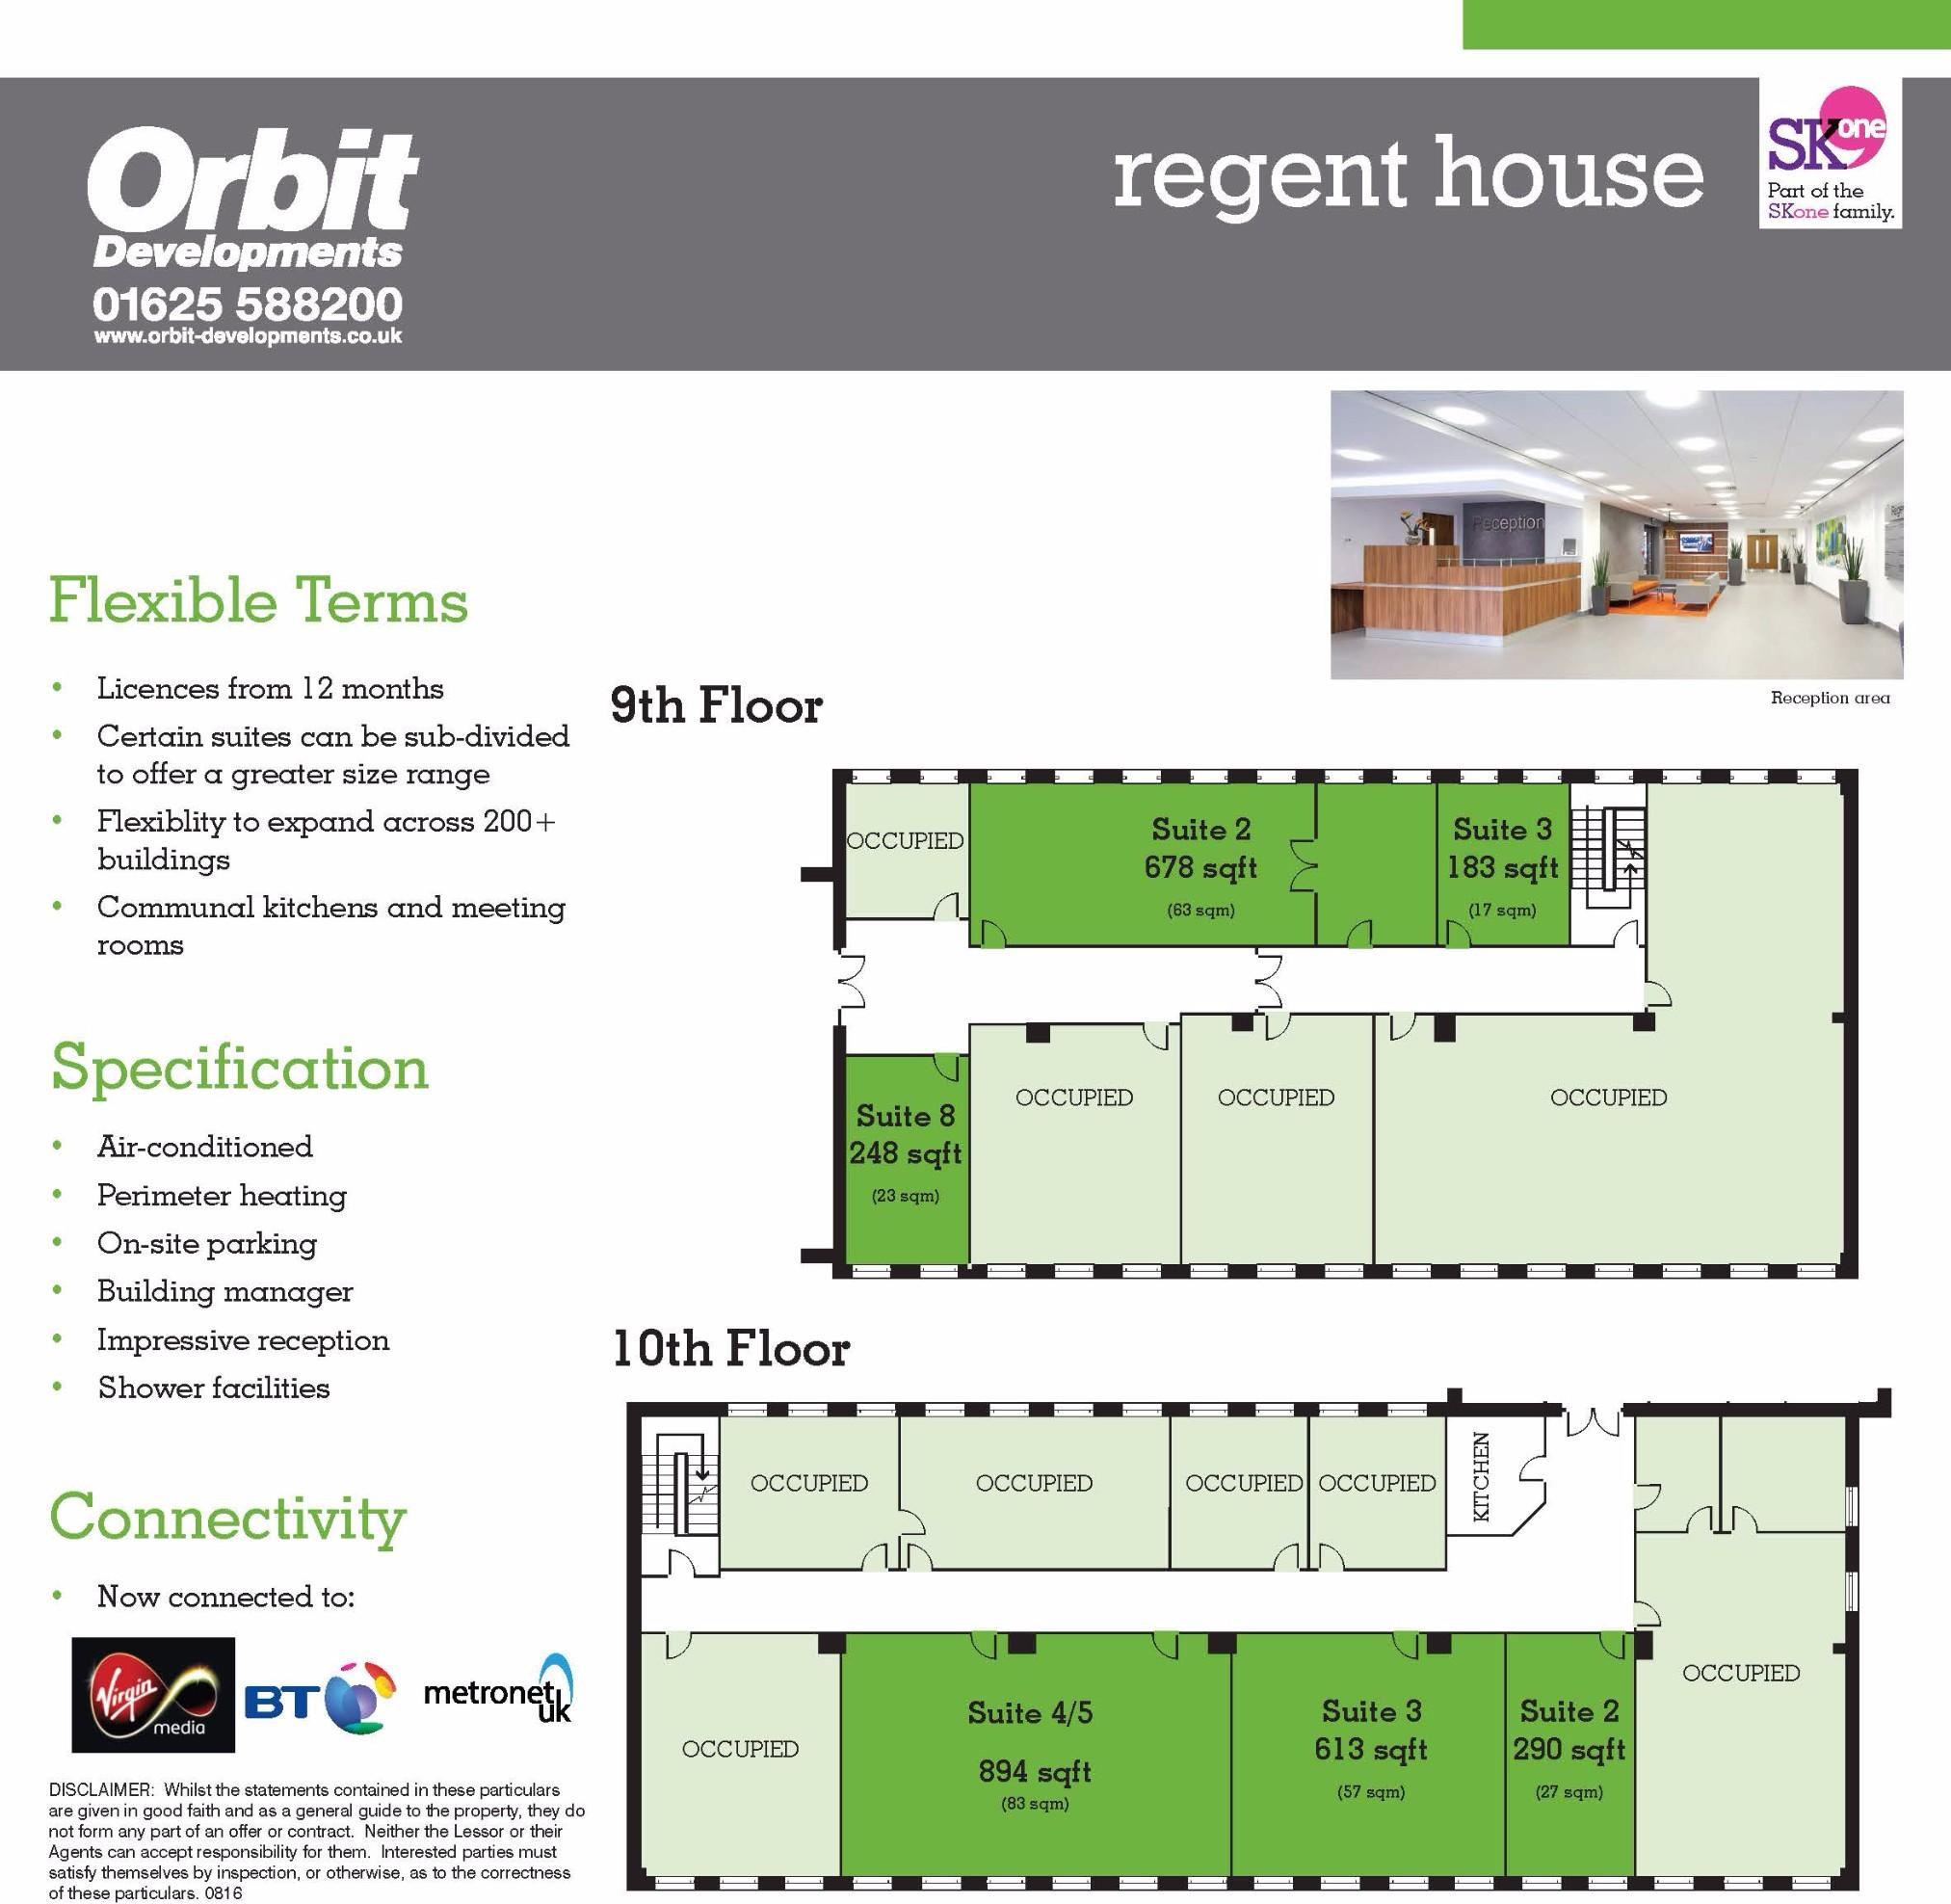 office to rent in regent househeaton lane stockport sk4 sk4